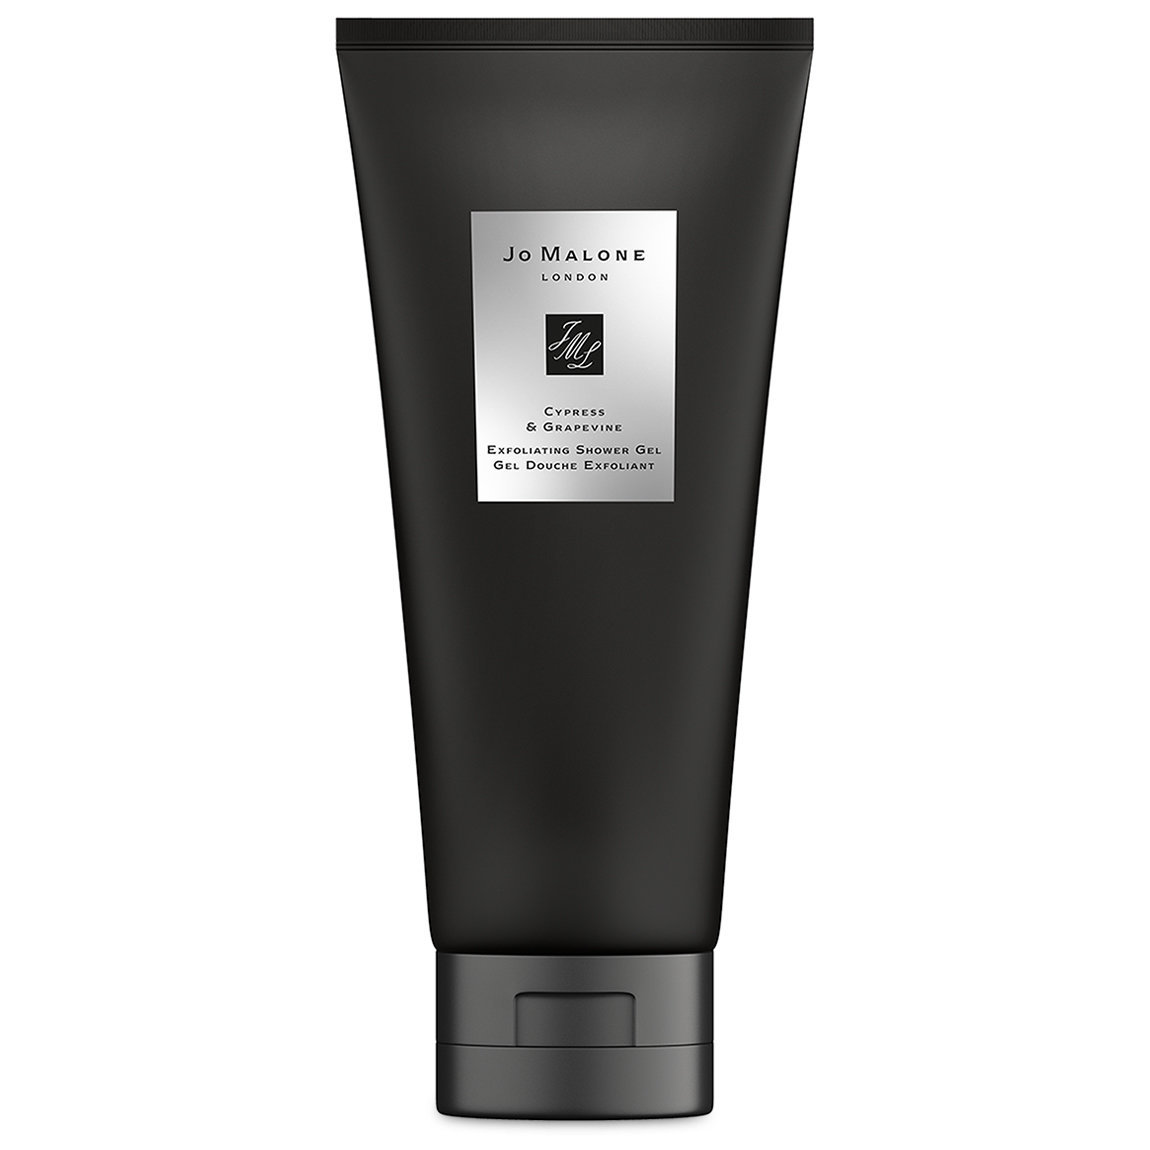 Jo Malone London Cypress & Grapevine Exfoliating Shower Gel alternative view 1 - product swatch.